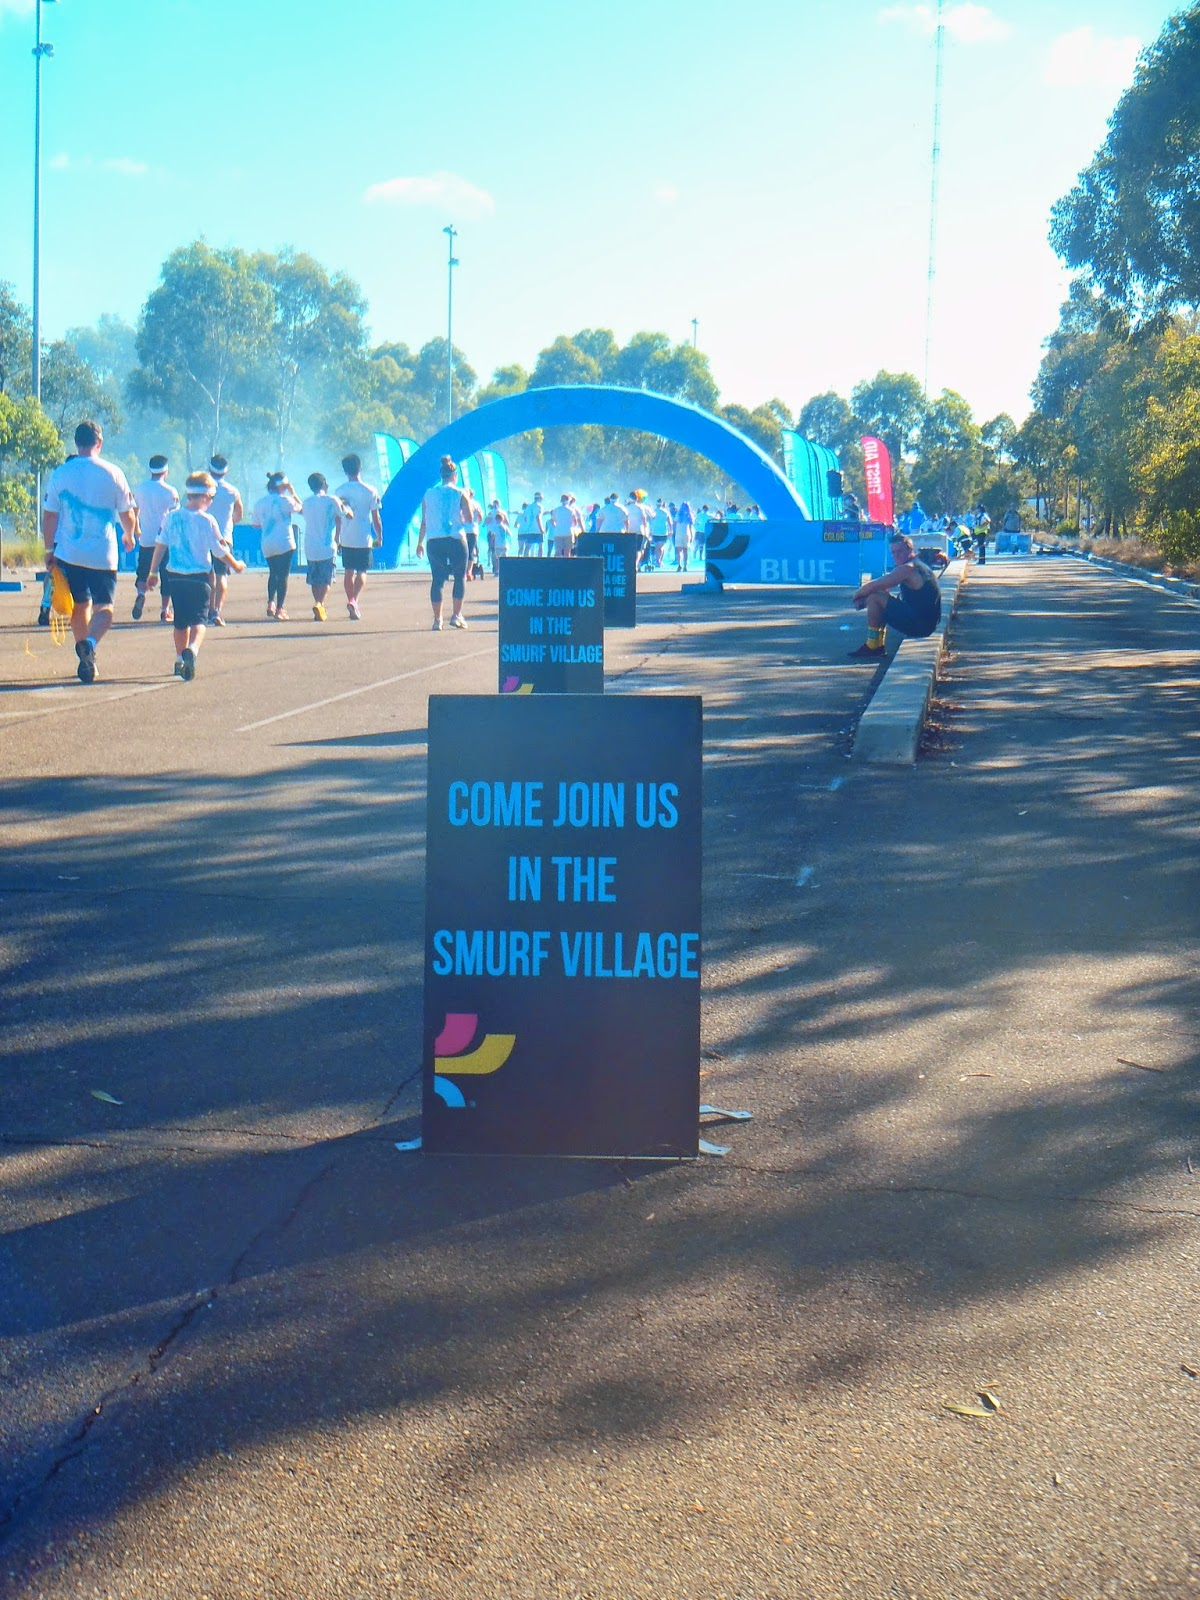 sign pointing towards smurf village